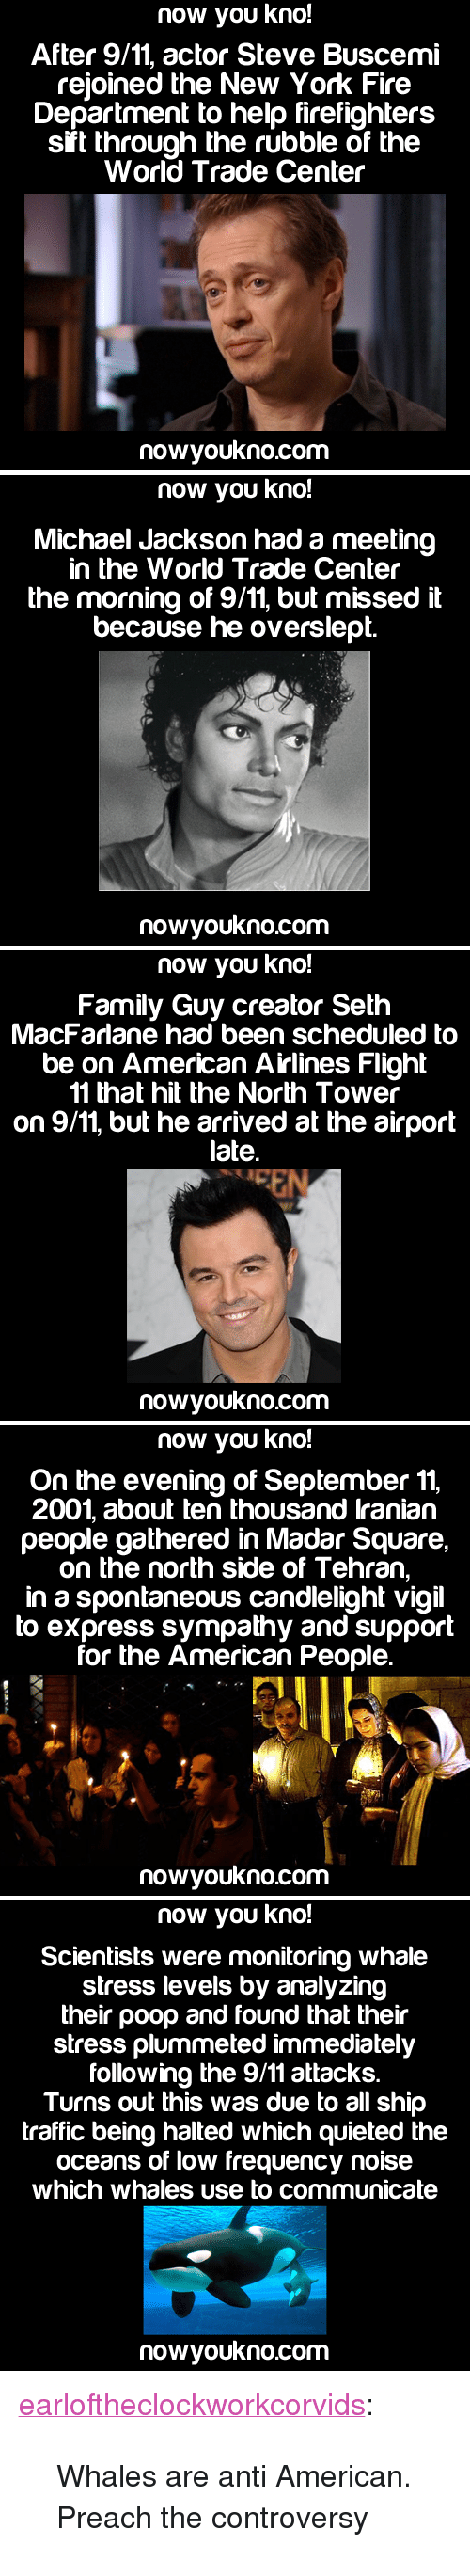 """Seth MacFarlane: now you kno!  After 9/11, actor Steve Buscemi  reioined the New York Fire  Department to help firefighters  sift through the rubble of the  World Trade Center  nowyoukno.com   now you kno!  Michael Jackson had a meeting  in the World Trade Center  the morning of 9/11, but missed it  because he overslept.  nowyoukno.com   now you kno!  Family Guy creator Seth  MacFarlane had been scheduled to  be on American Airlines Flight  11 that hit the North Tower  on 9/11, but he arrived at the airport  late.  nowyoukno.com   now you kno!  On the evening of September 11,  2001, about ten thousand lranian  people gathered in Madar Square,  on the north side of Tehran,  in a spontaneous candlelight vigil  to express sympathy and support  for the American People.  nowyoukno.com   now you kno!  Scientists were monitoring whale  stress levels by analyzing  their poop and found that their  stress plummeted immediately  following the 9/11 attacks.  Turns out this was due to all ship  traffic being halted which quieted the  oceans of low frequency noise  which whales use to communicate  nowyoukno.com <p><a href=""""http://earloftheclockworkcorvids.tumblr.com/post/128931585460/whales-are-anti-american-preach-the-controversy"""" class=""""tumblr_blog"""">earloftheclockworkcorvids</a>:</p>  <blockquote><p>Whales are anti American. Preach the controversy</p></blockquote>"""